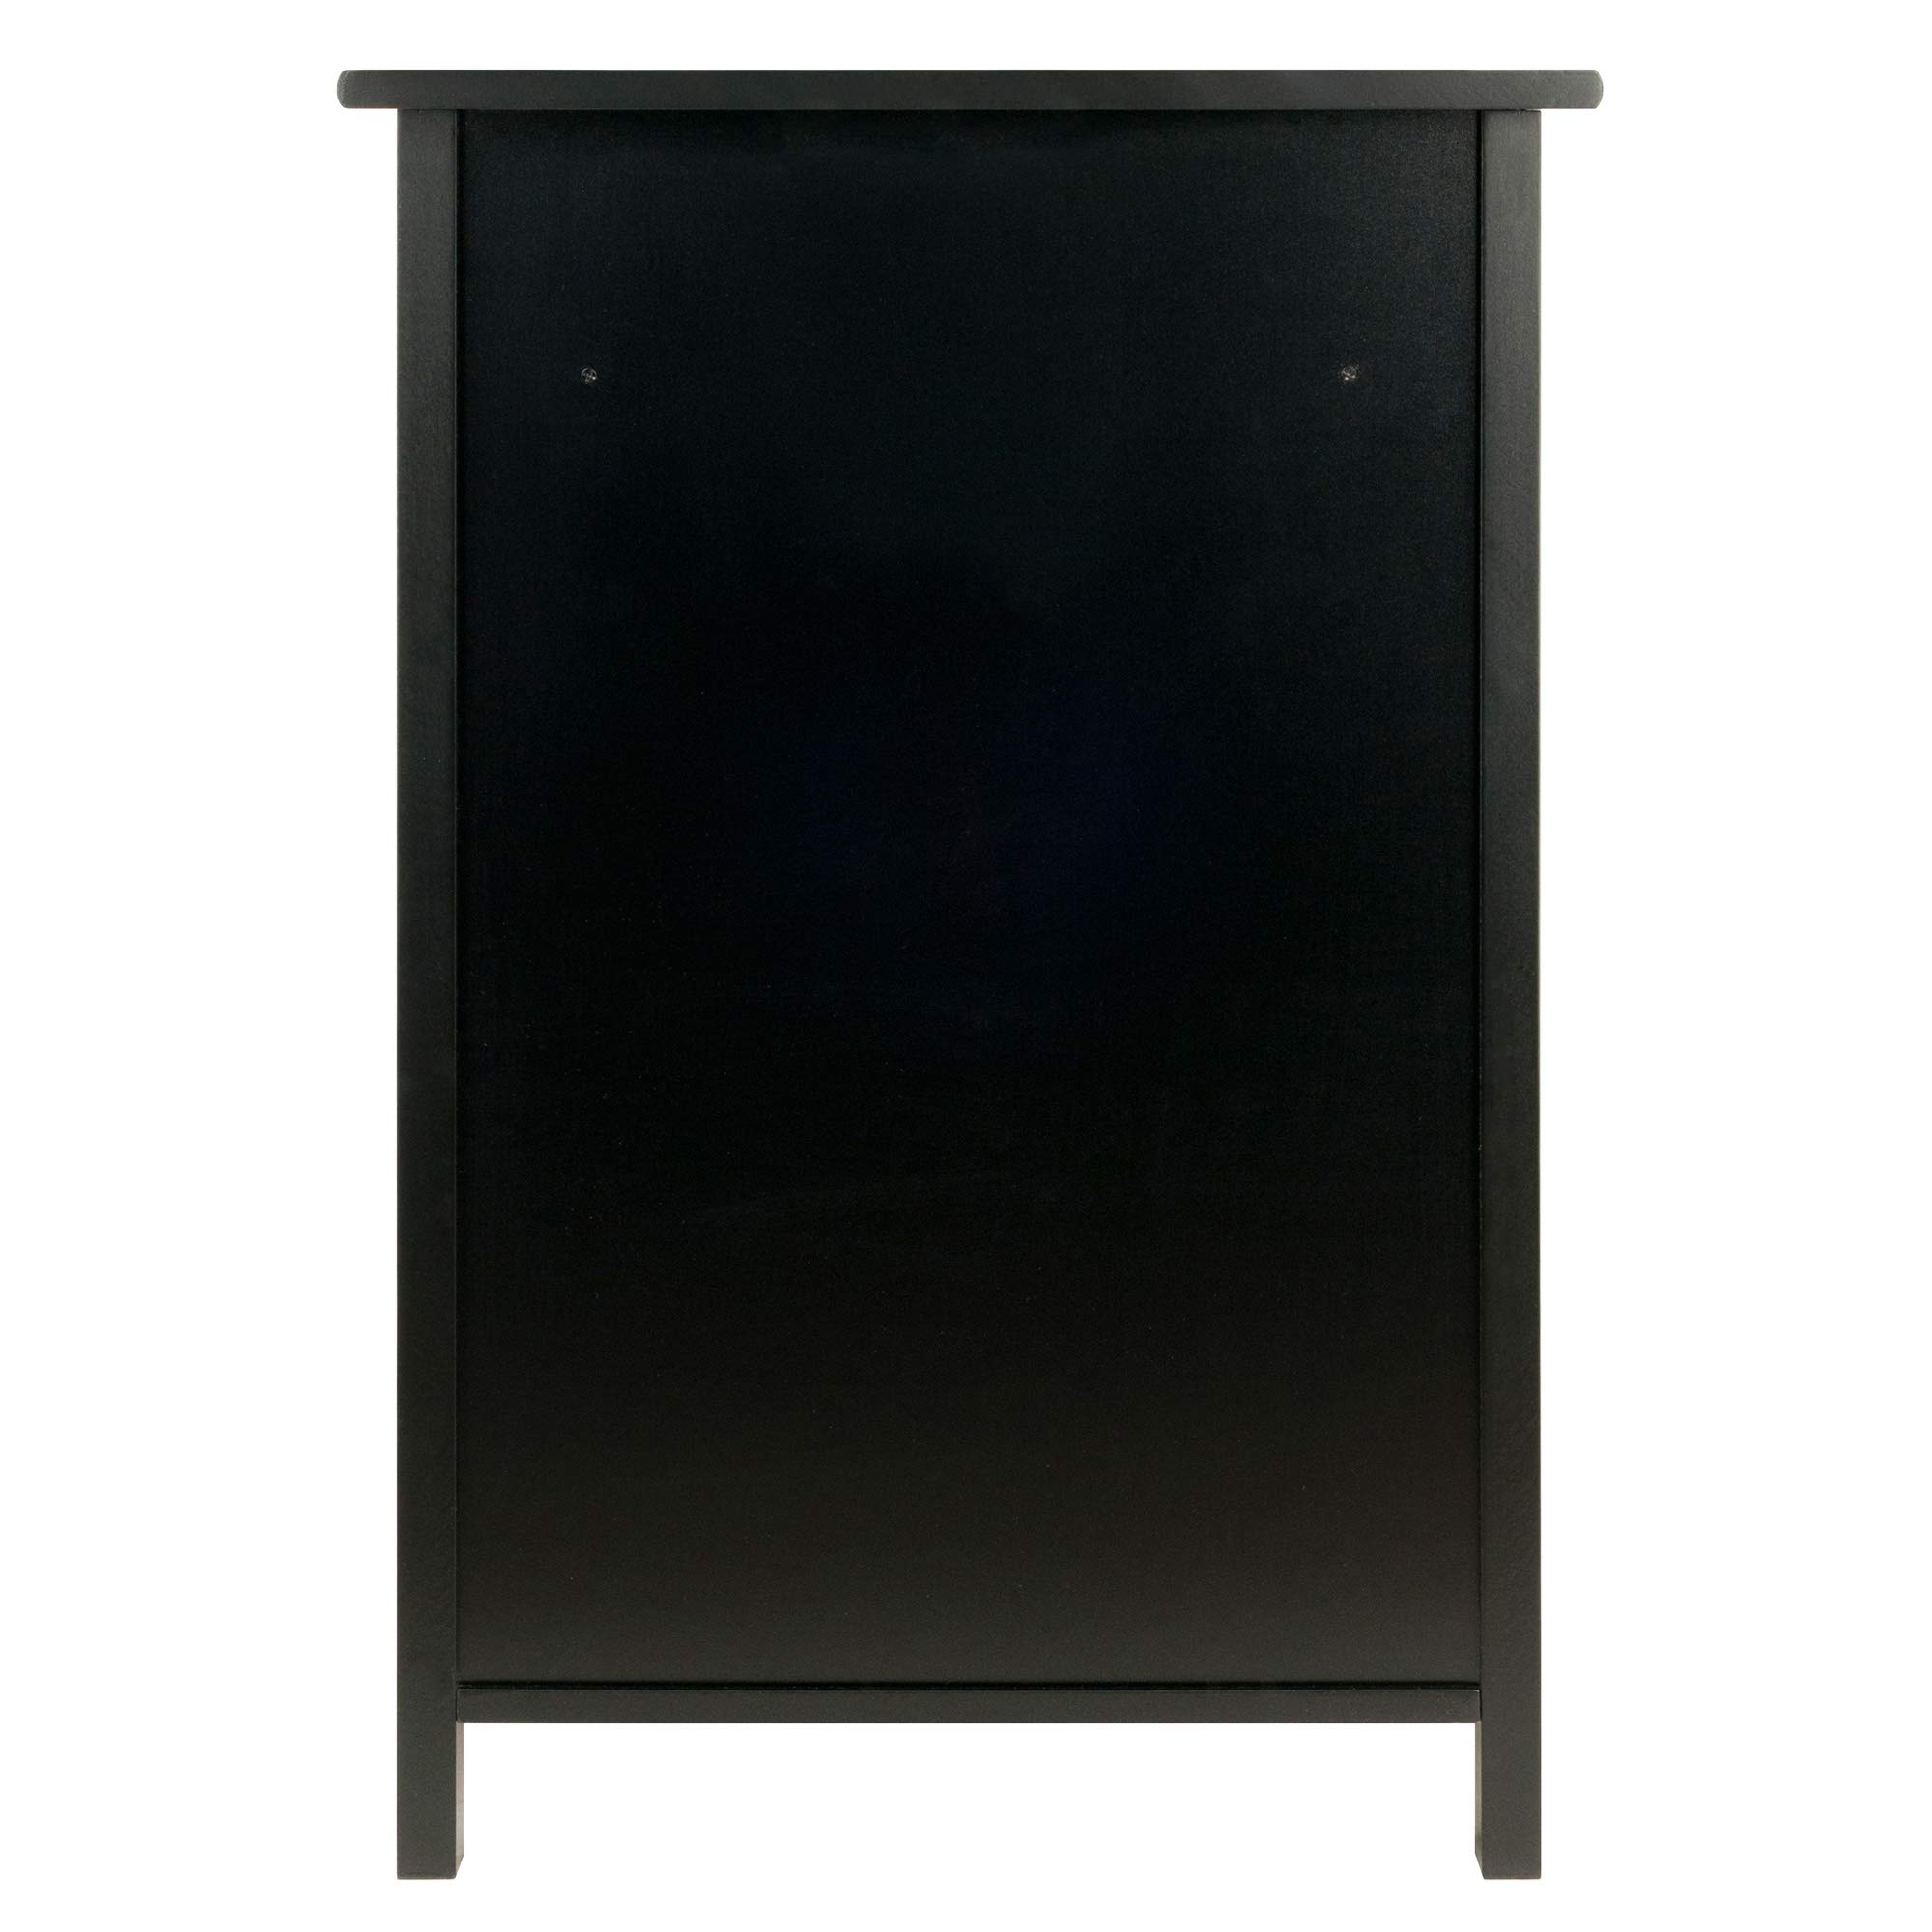 Winsome Wood 22321 Delta File Cabinet Black Home Office, by Winsome Wood (Image #6)